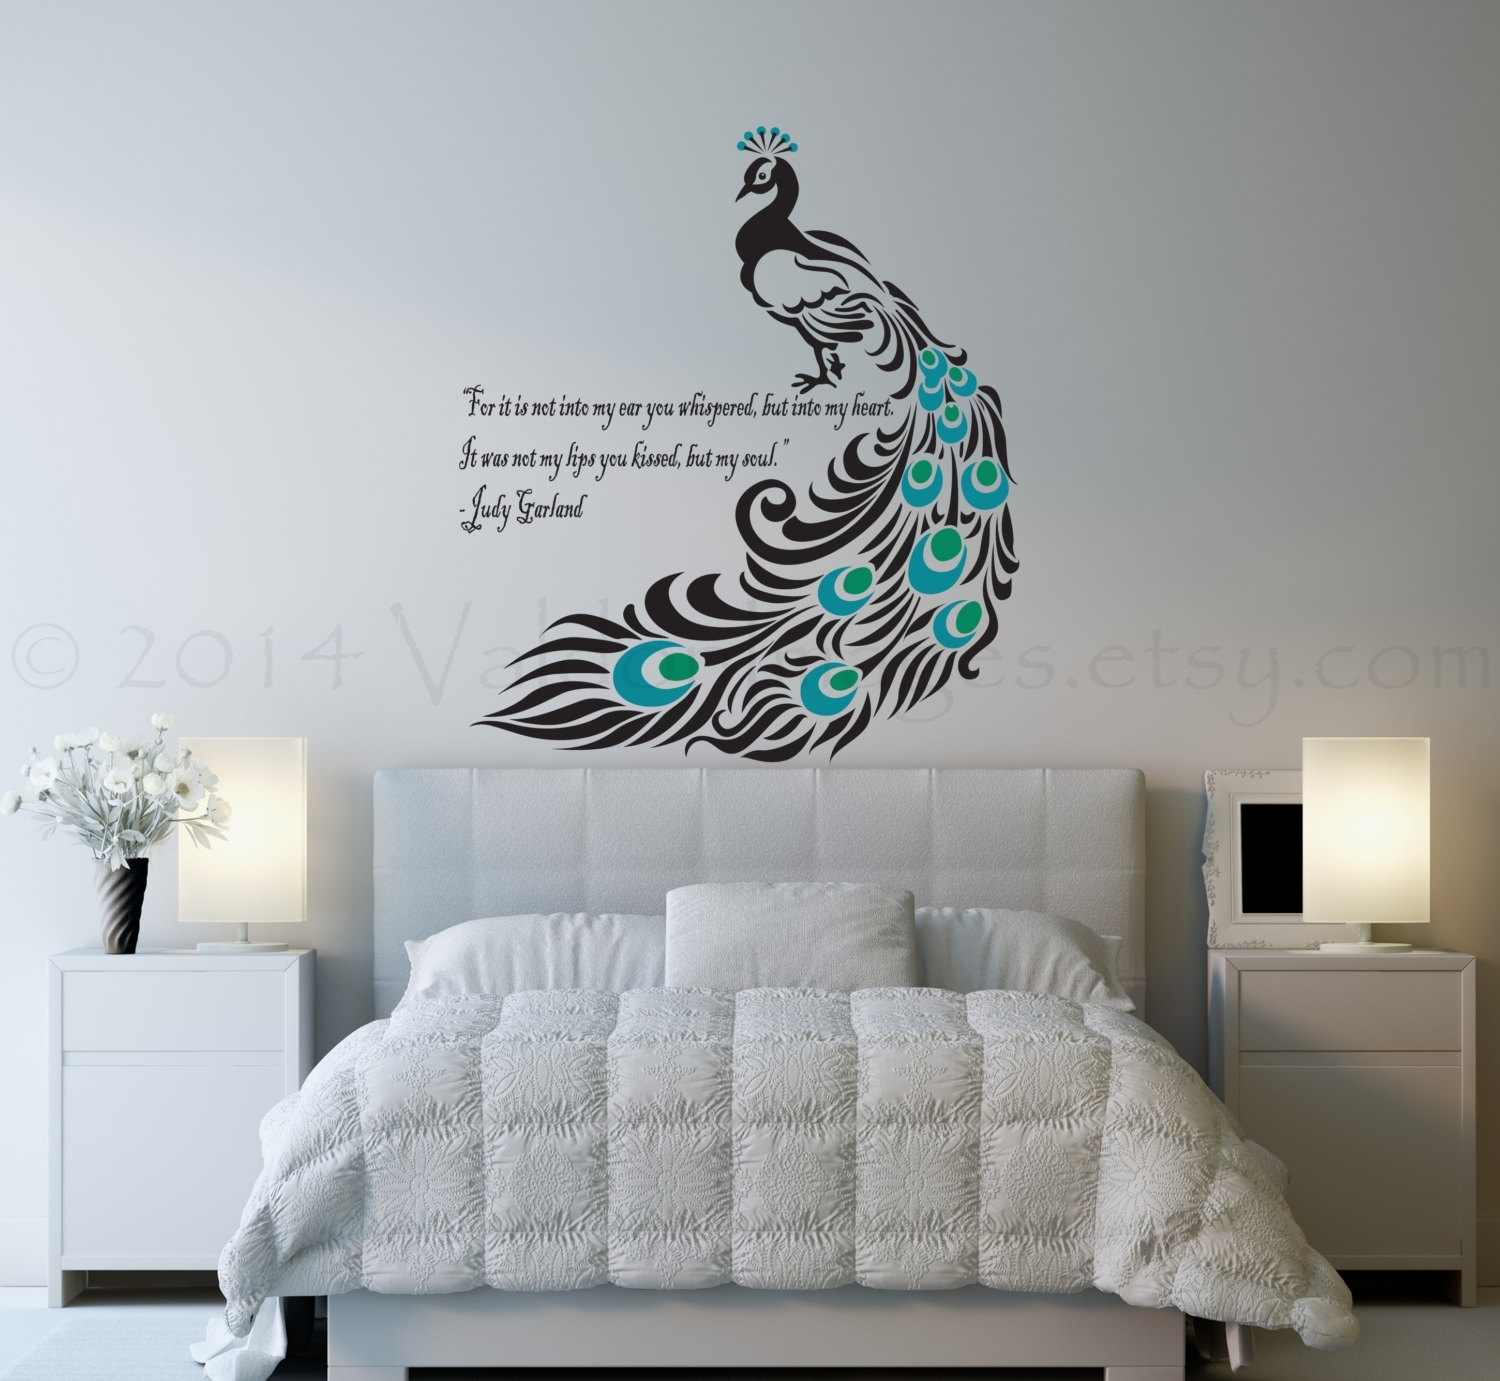 Fancy Wall Art Design Ideas Bedroom Ideal Artistic Walls Nice inside Bedroom Wall Art (Image 11 of 20)